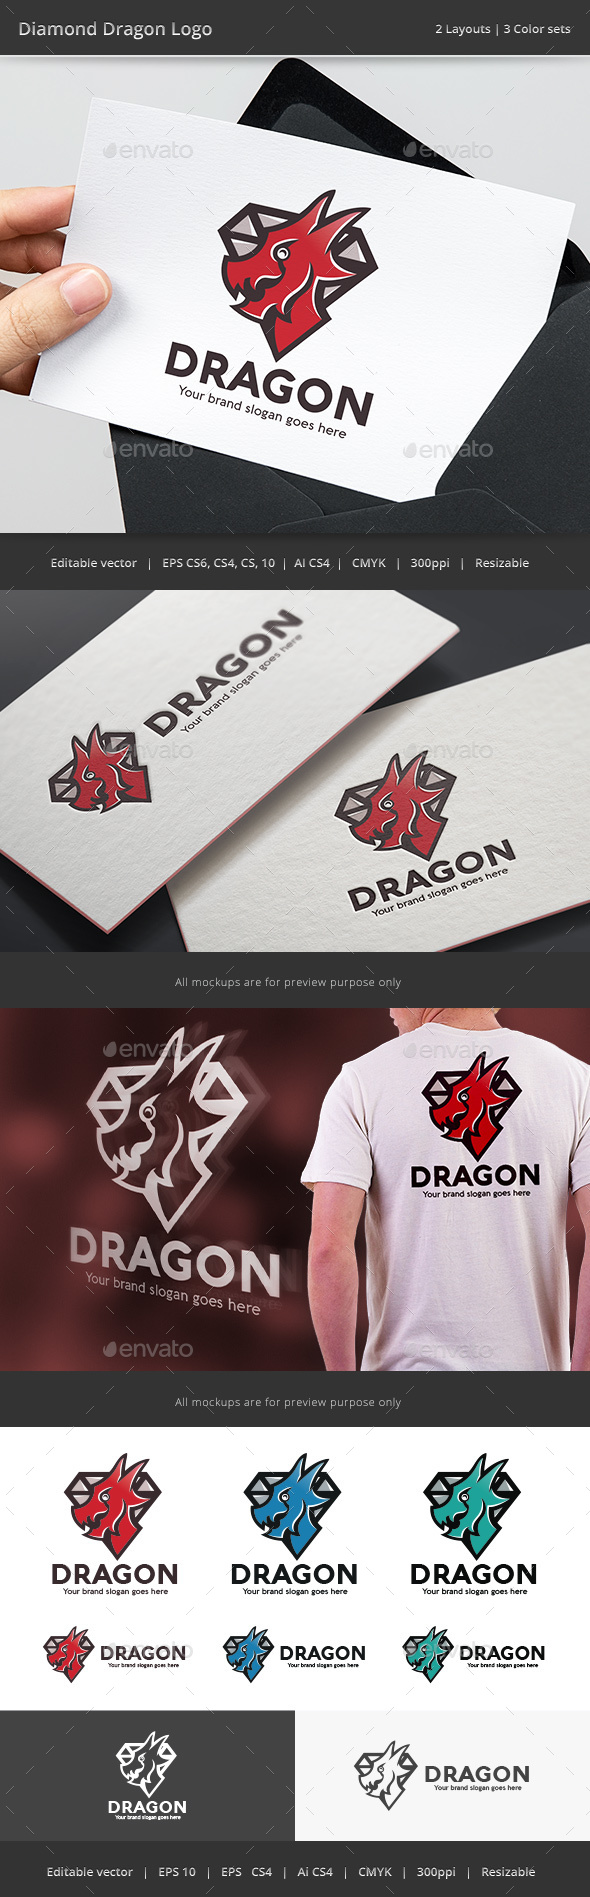 Diamond Dragon Crest Logo - Crests Logo Templates